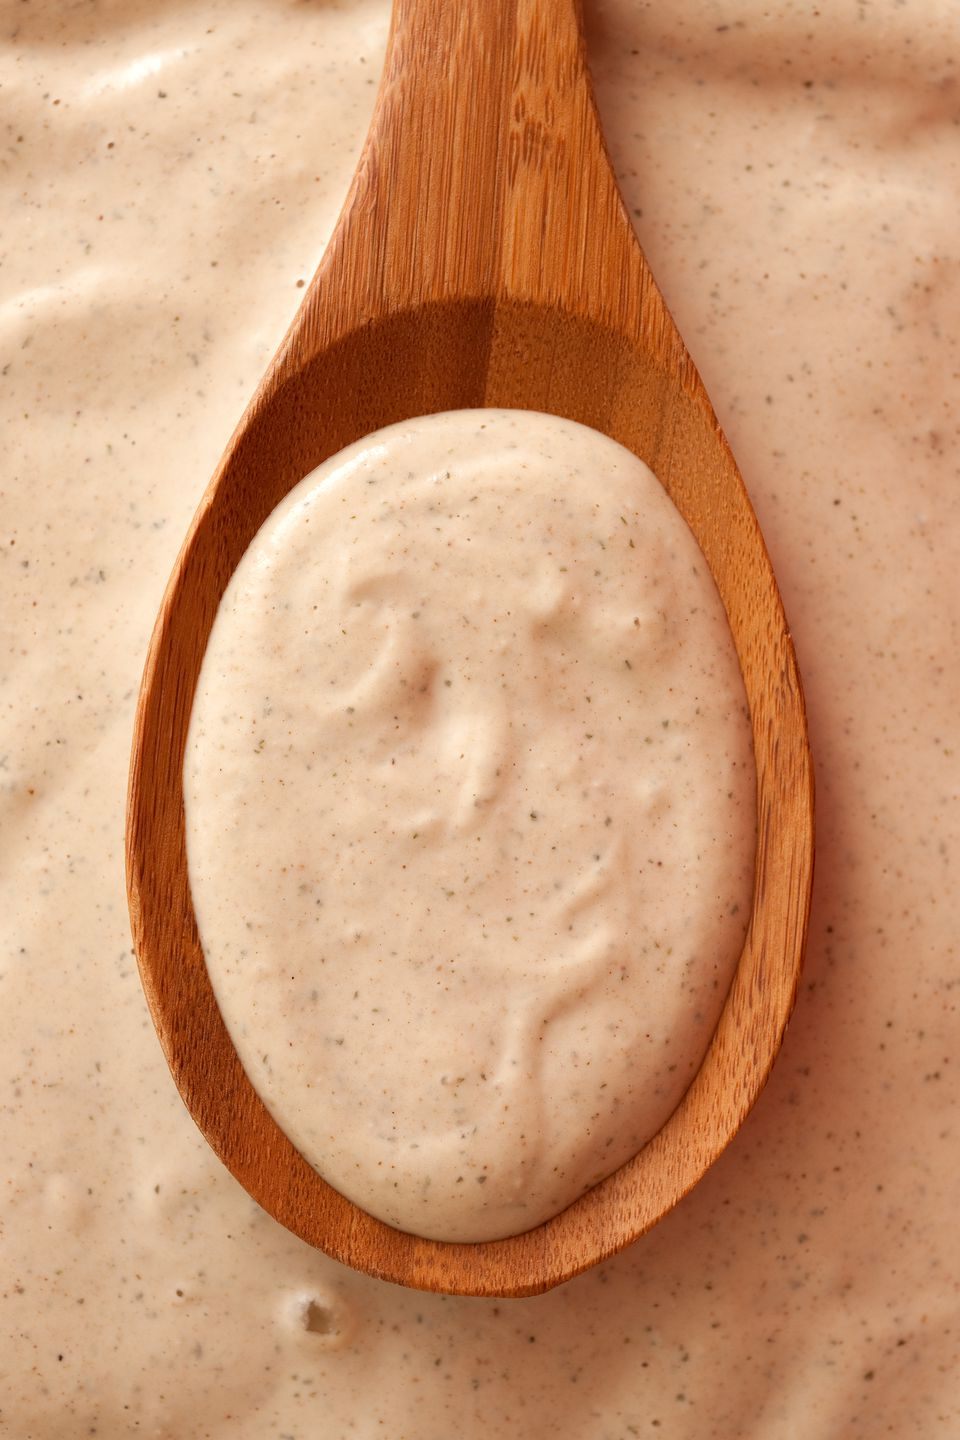 Tahini on a wooden spoon